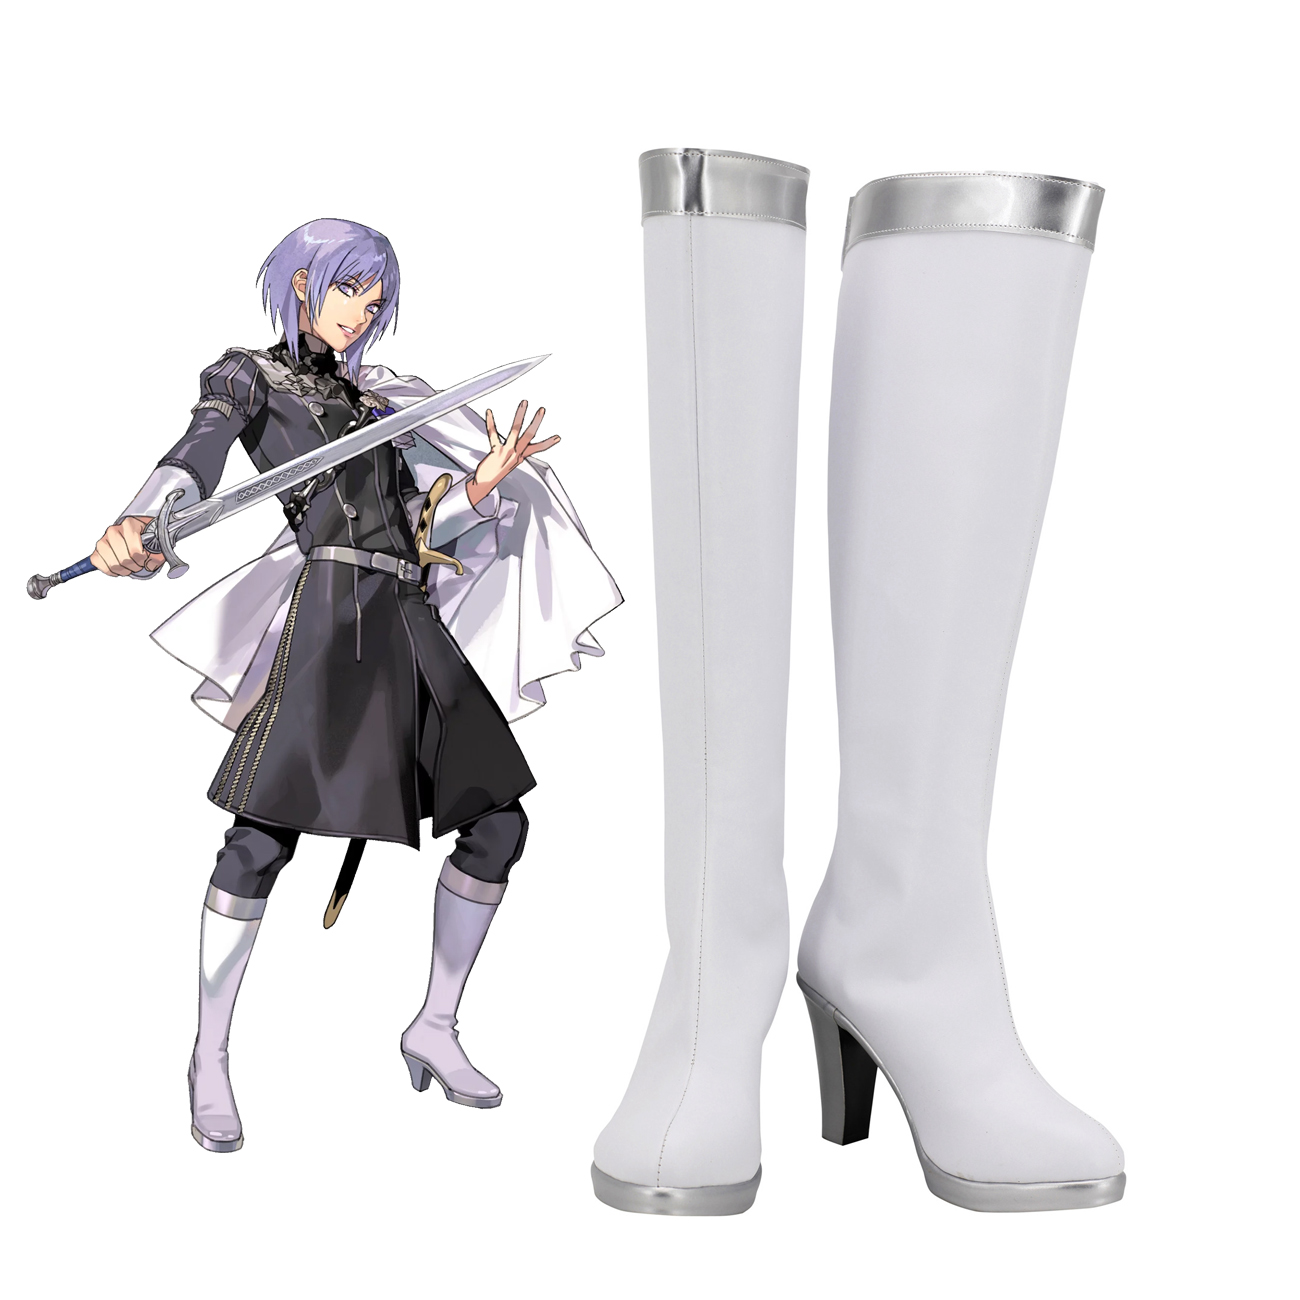 Fire Emblem Yuri Cosplay Boots White Shoes Yuri High Heel Shoes Custom Made for Unisex image